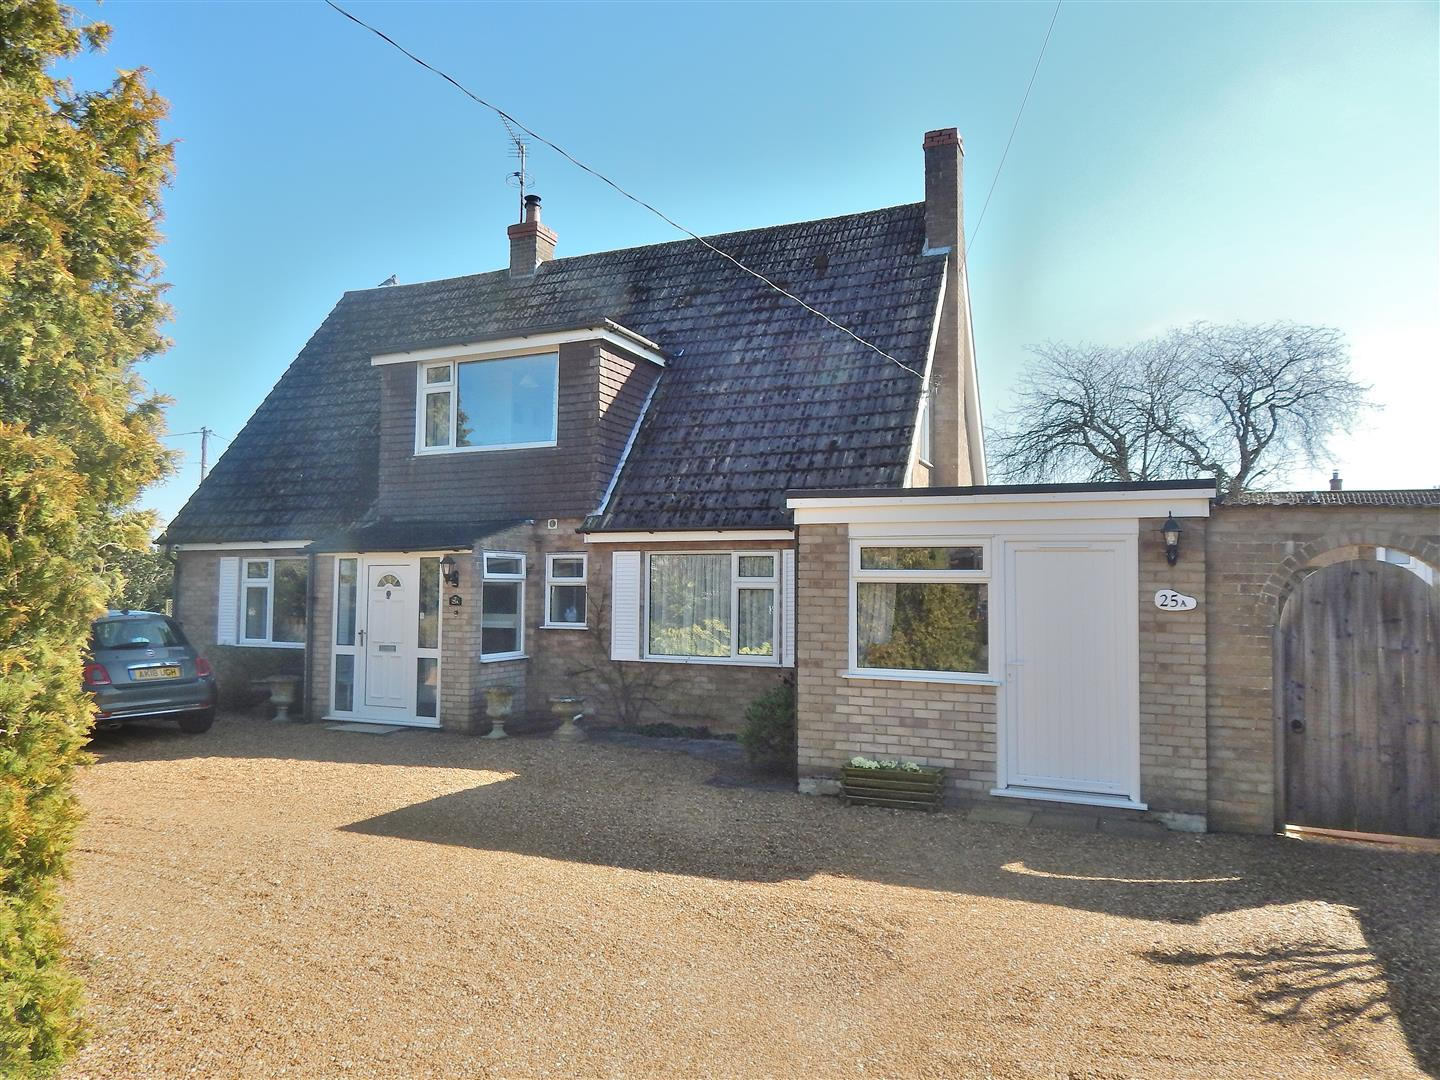 4 bed detached house for sale in Station Road, King's Lynn, PE31